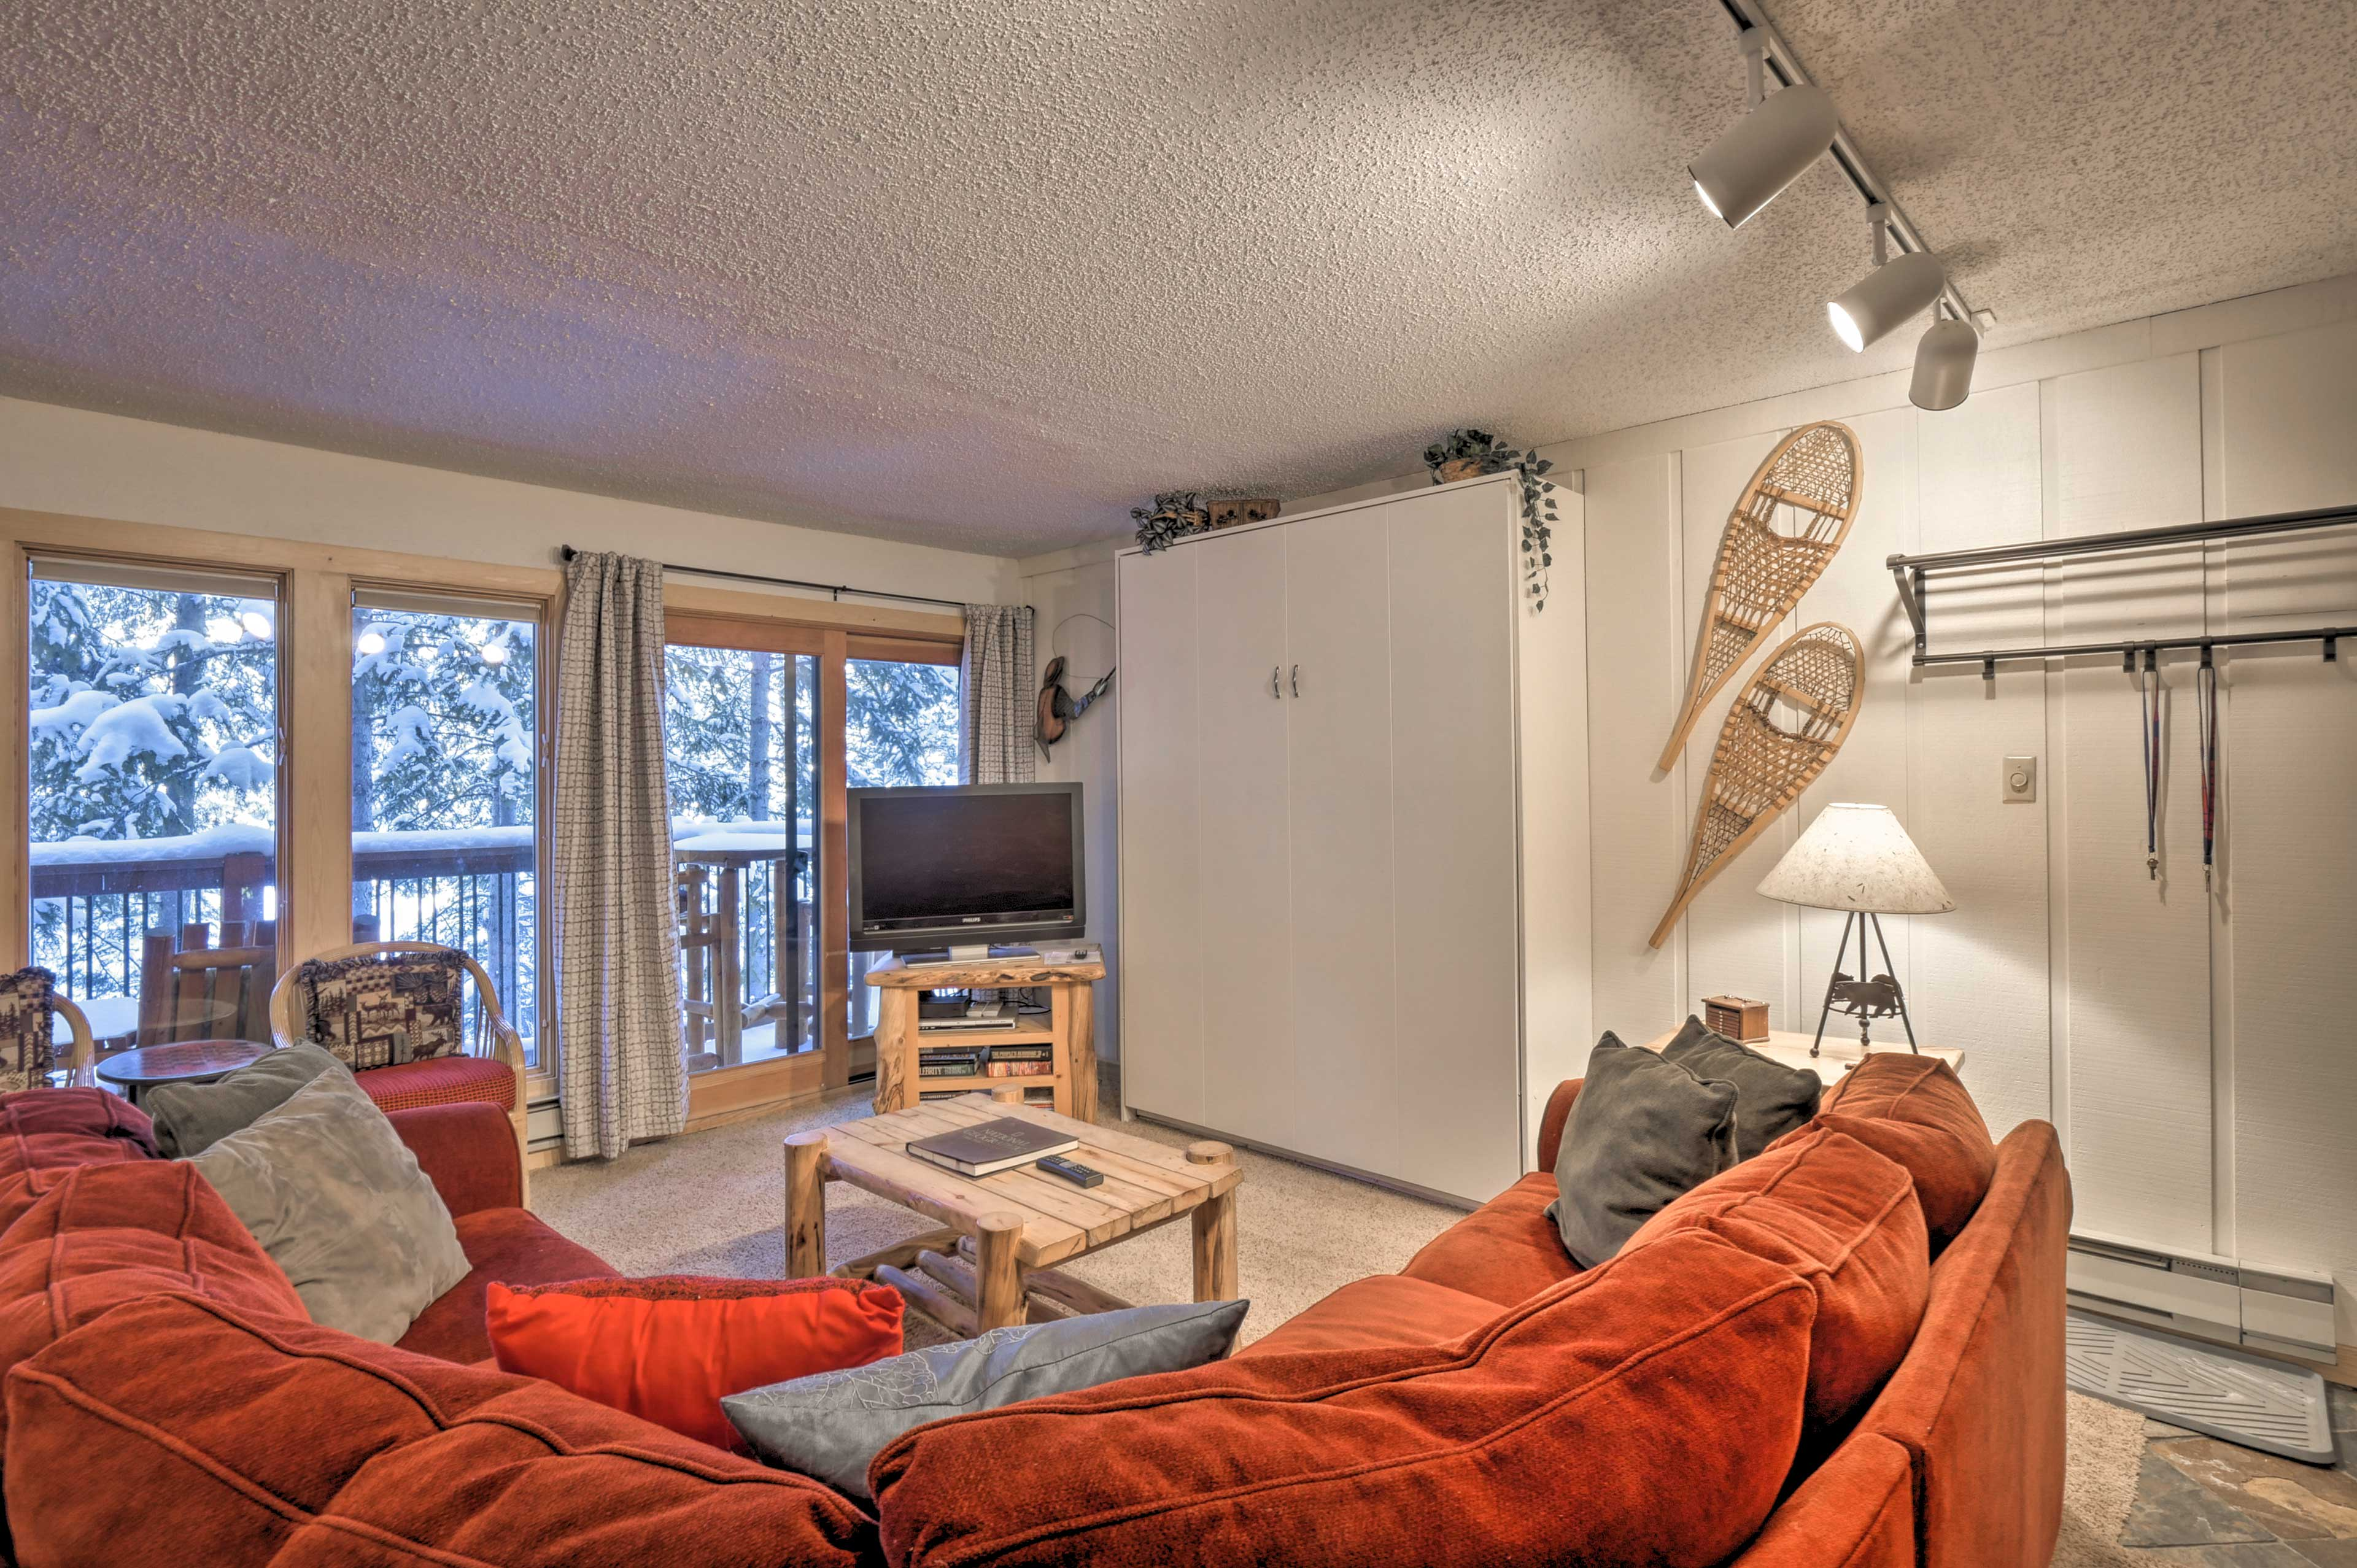 This mountain refuge has all the modern comforts of home.